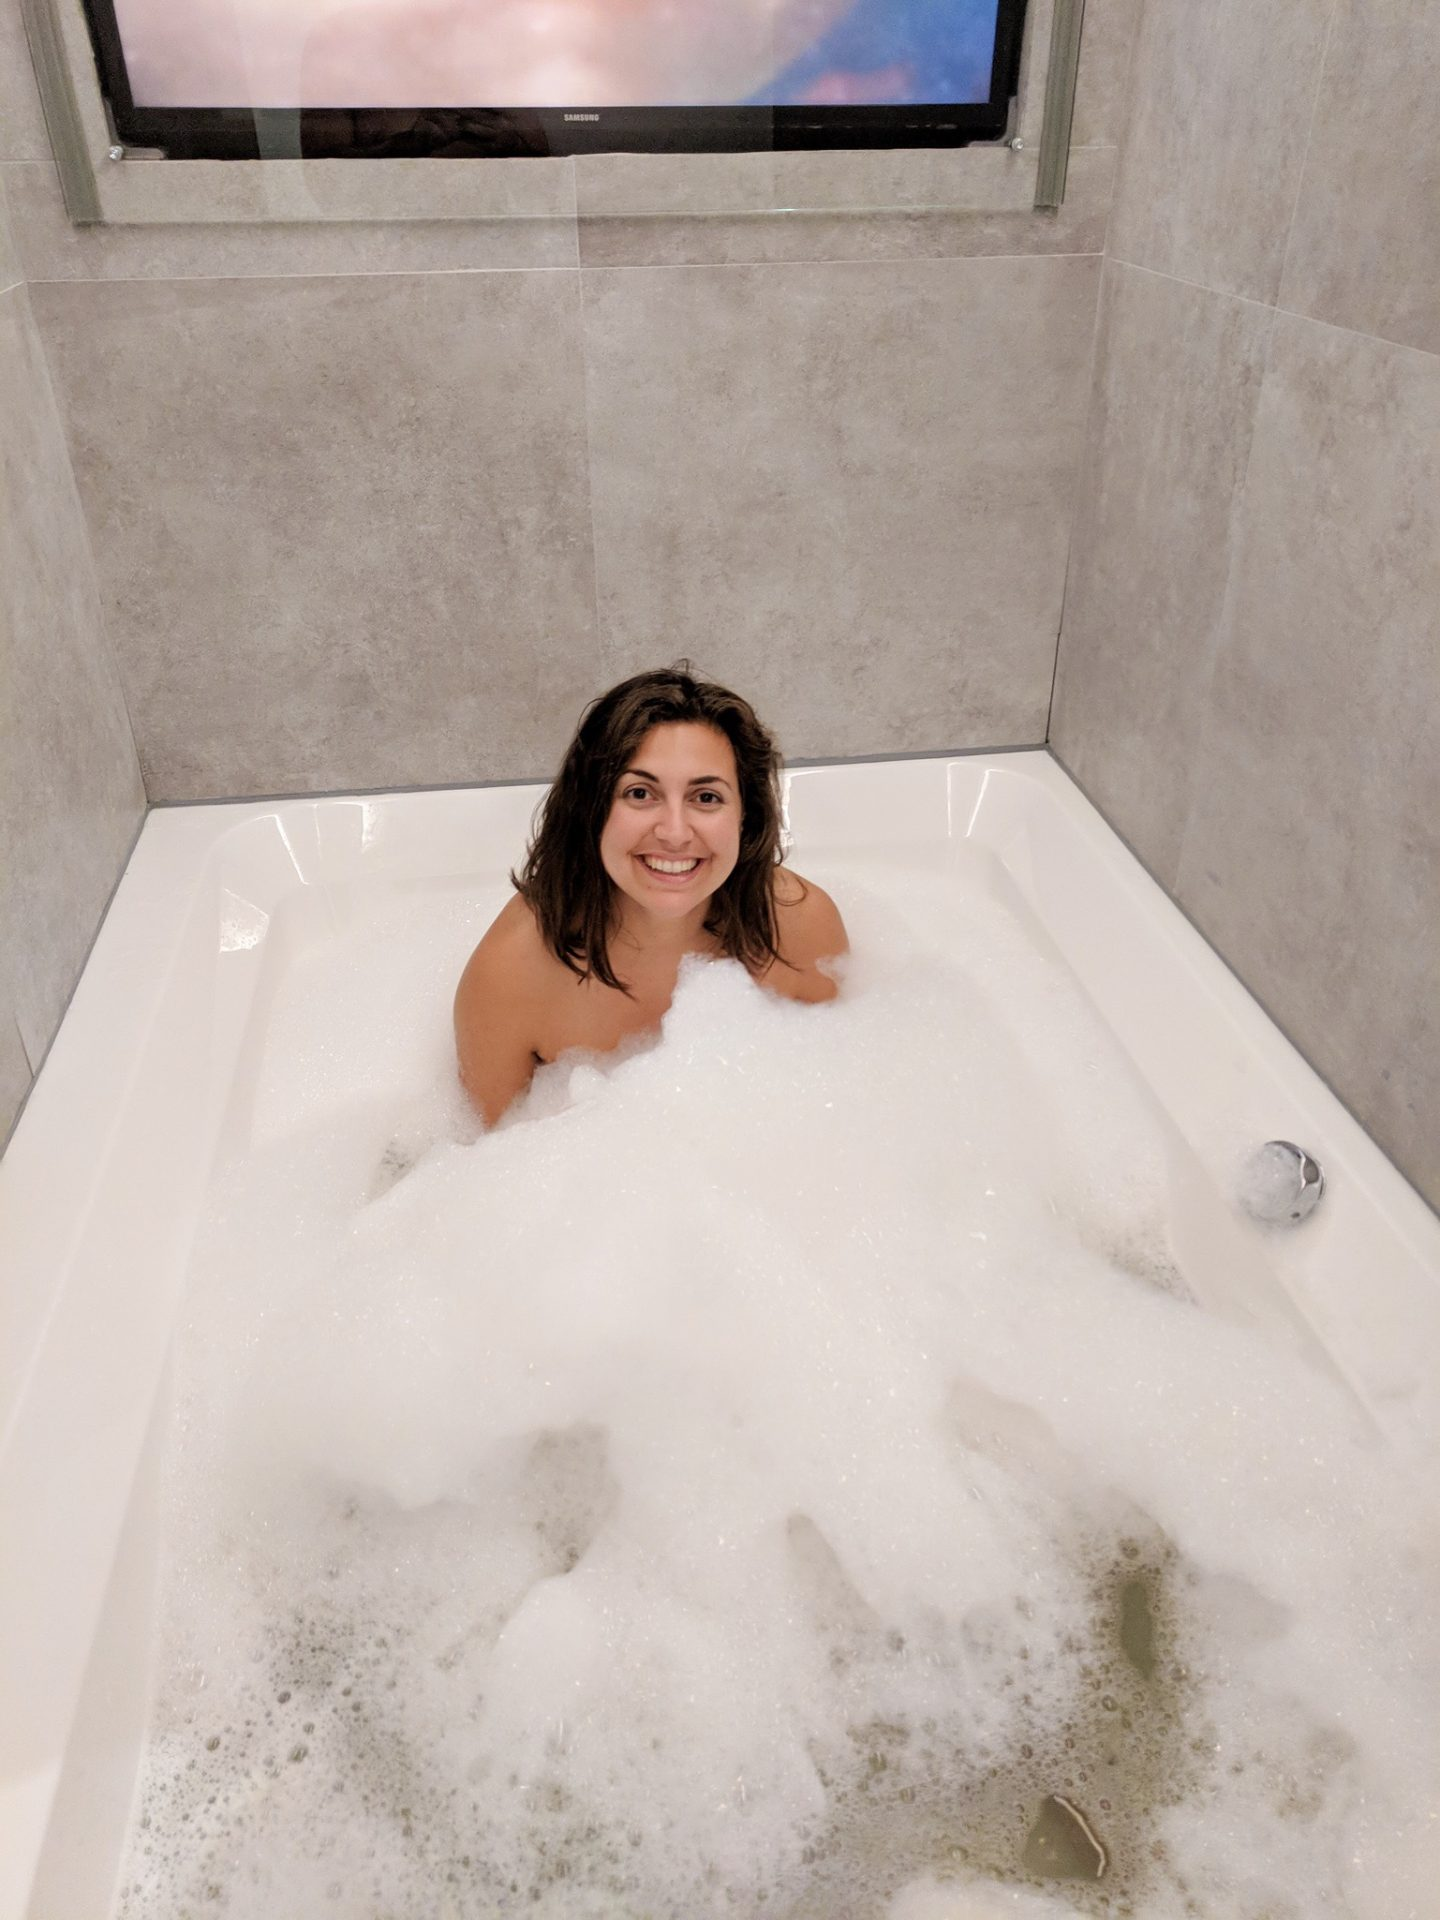 Girl in double width bubble bath with tv in the wall behind - cheap city breaks